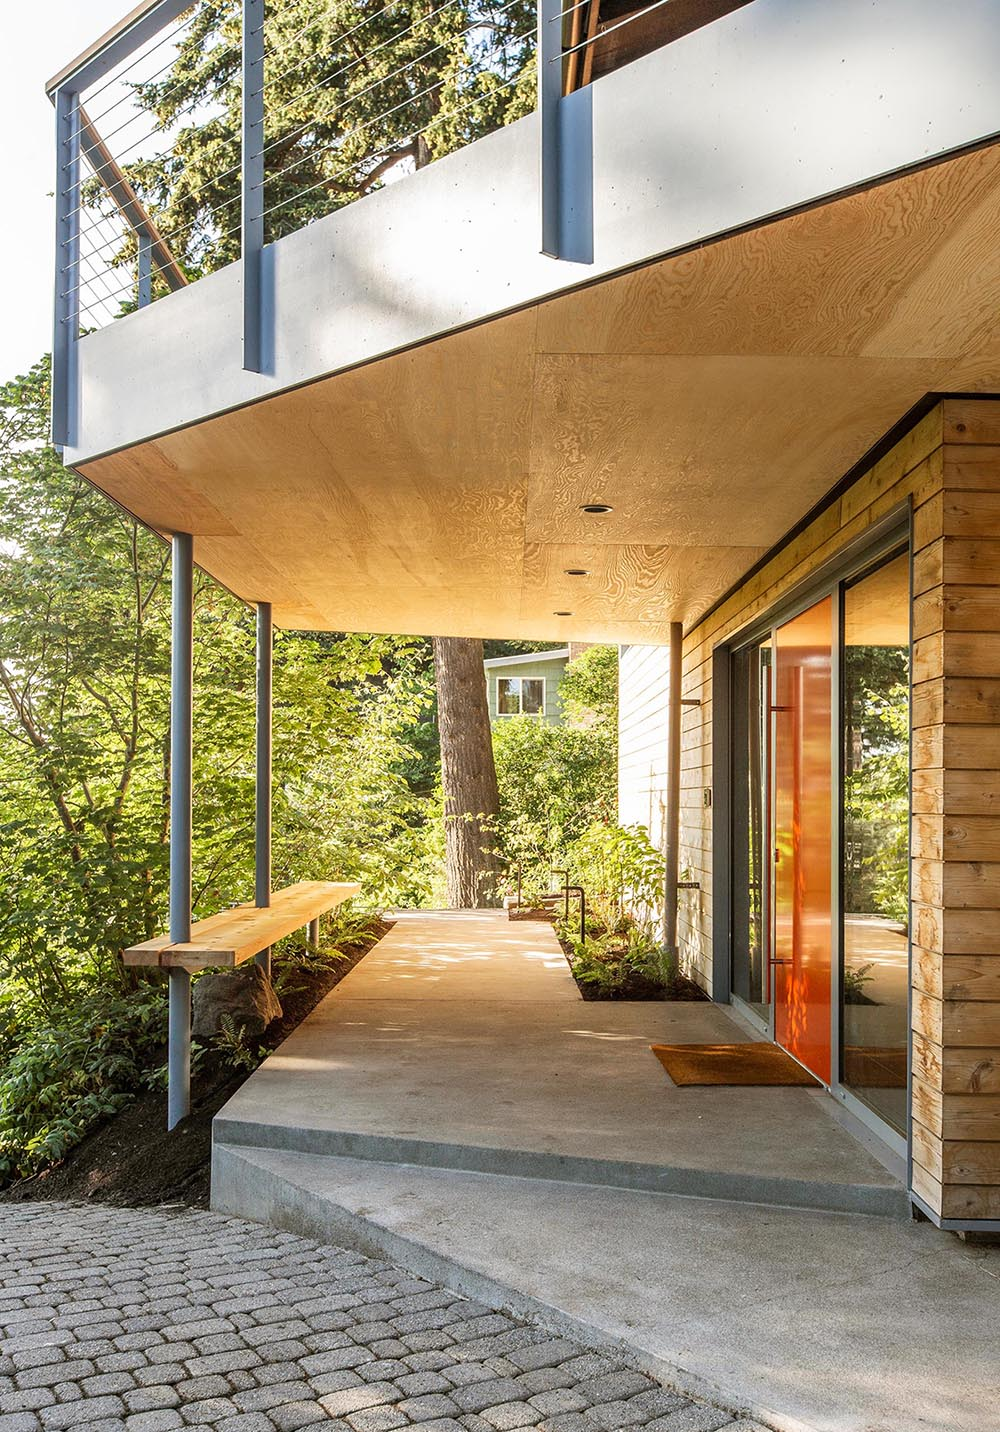 A partially covered walkway with a cedar bench leads people to the front door.